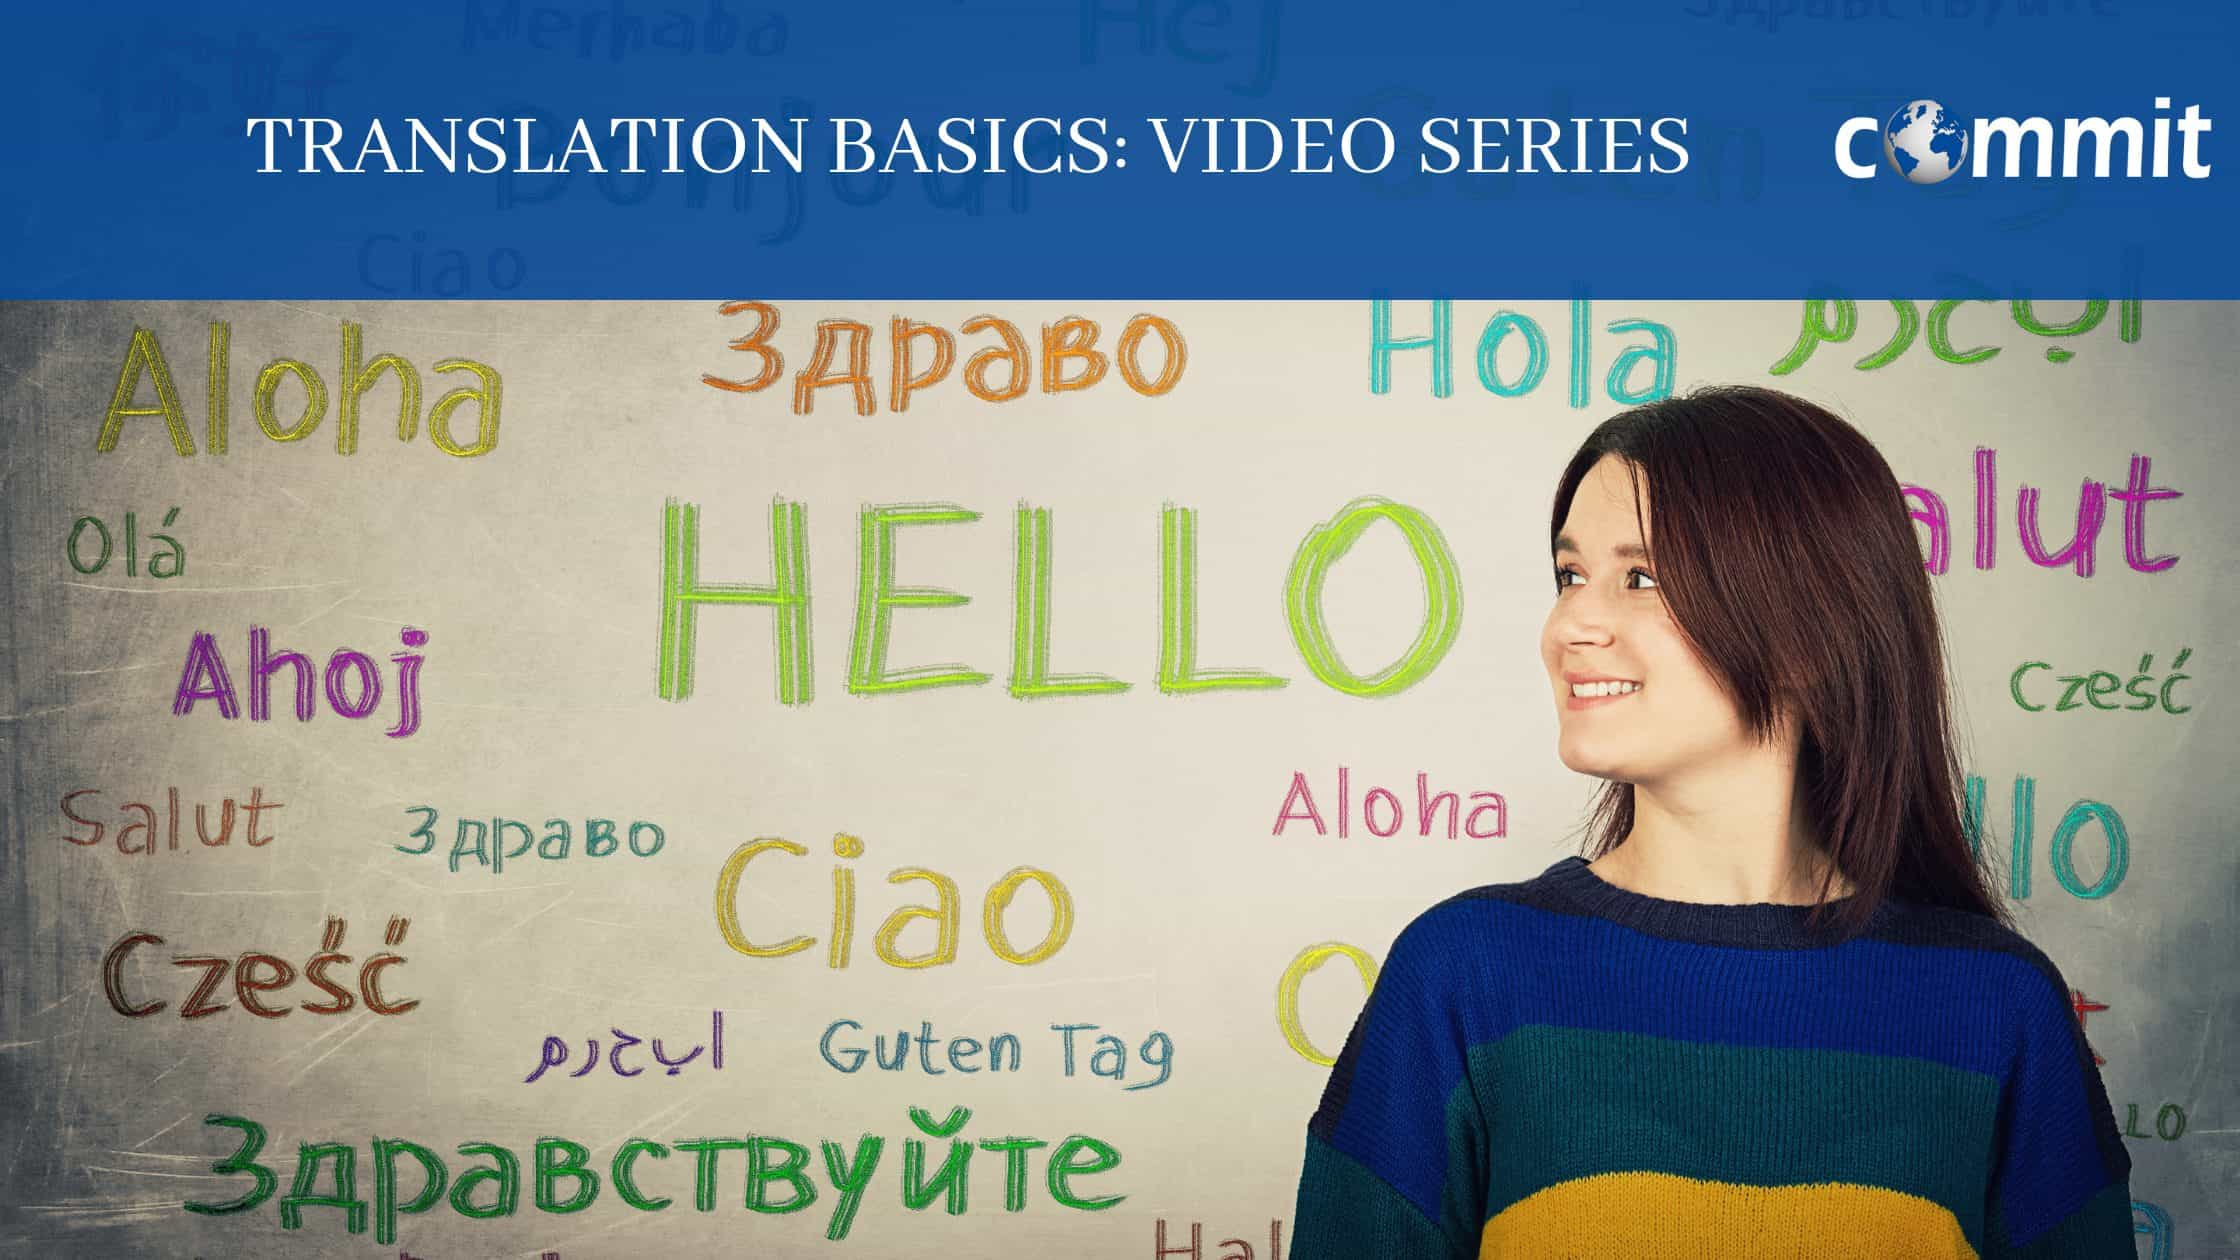 Translation Basics (Video Series)